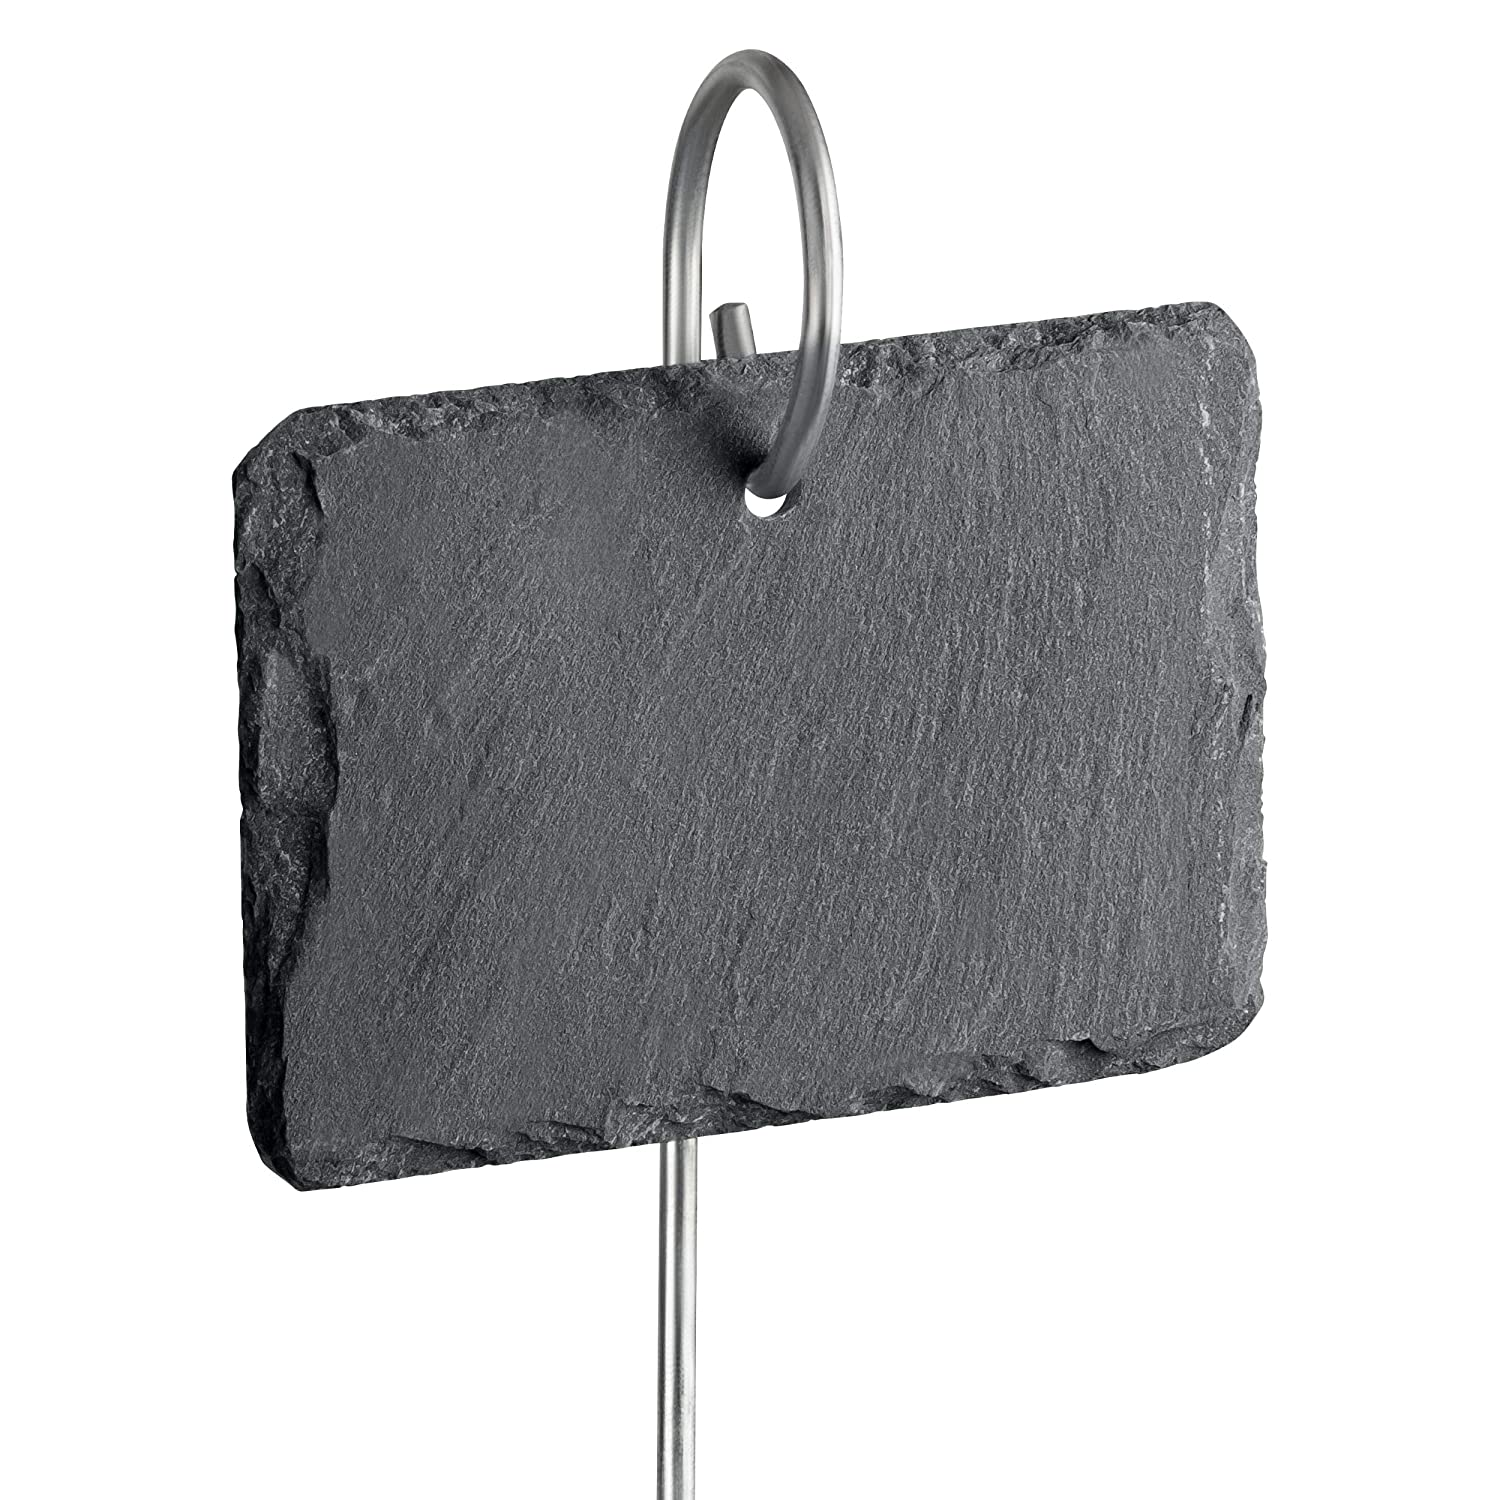 "GardenMate 10-Pack Natural Style Slate Plant Labels (4"" x 2 3/4"") Hanging from a Stainless Steel Metal Rod (22"")"